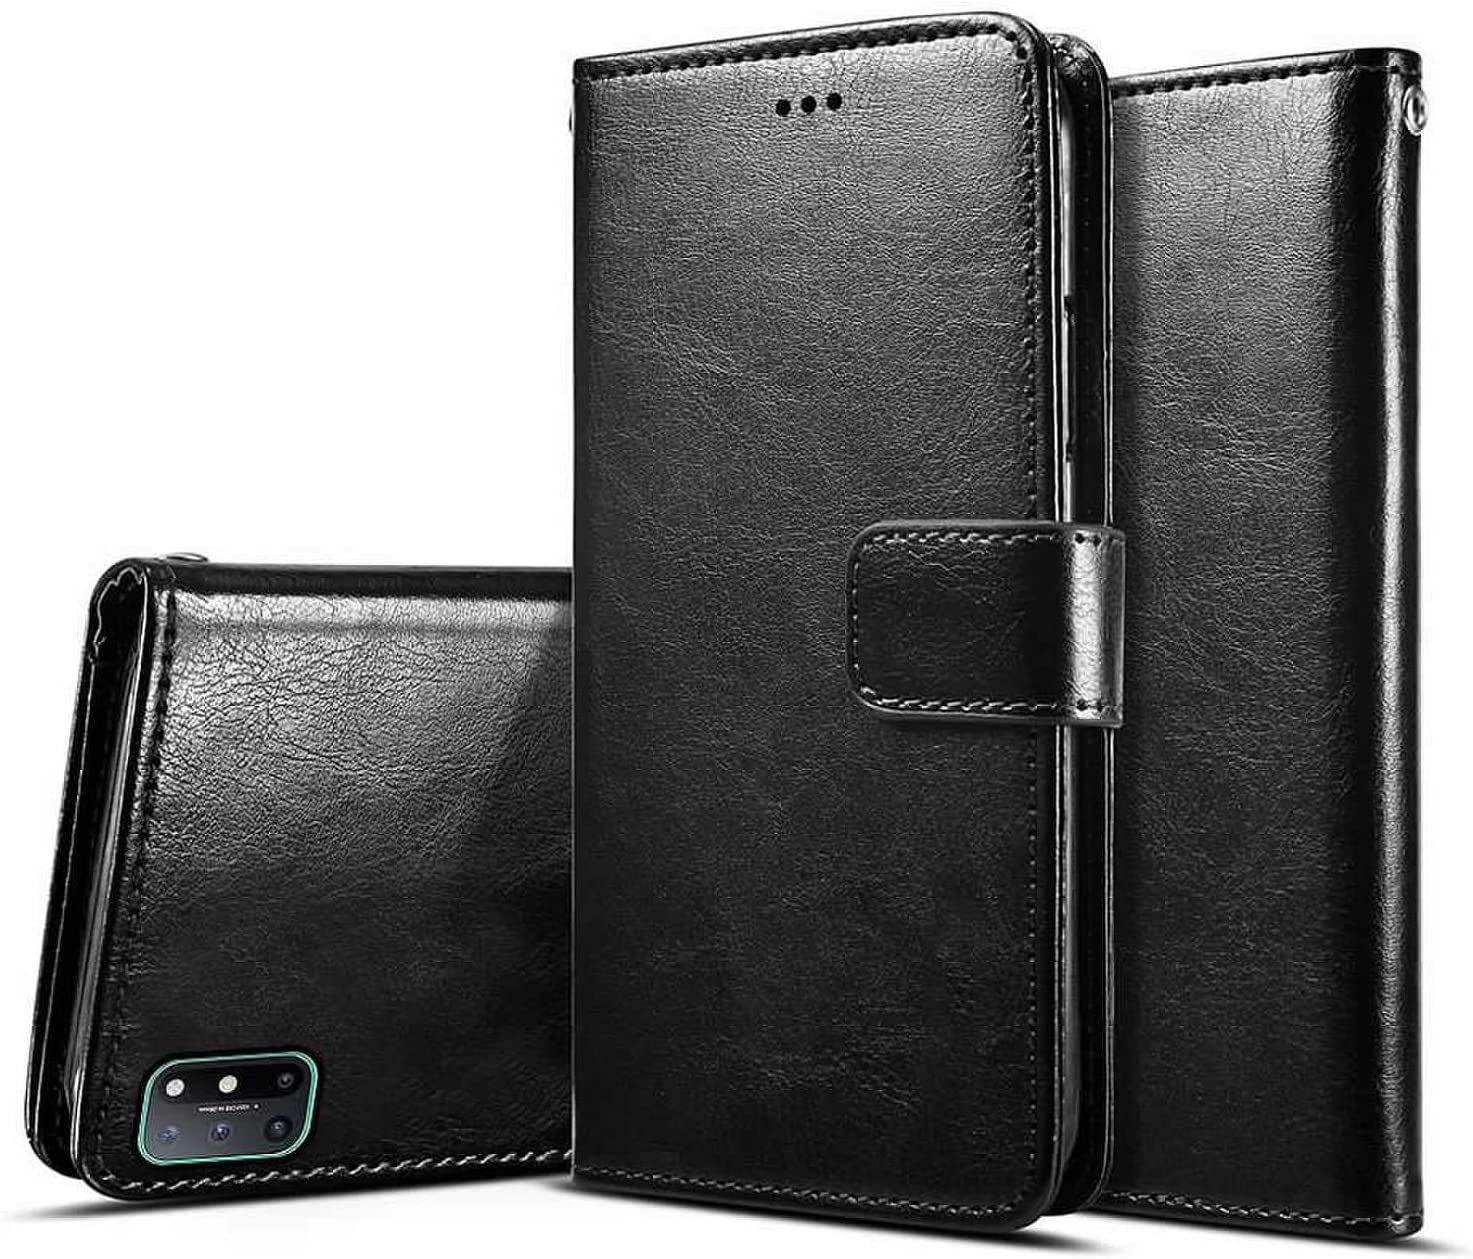 Oneplus 8T Case with Screen Protector,PU Leather Wrist Strap Card Slots Soft TPU Shockproof Protective Flip Cover Case,Black OnePlus 8T 5G Wallet Case